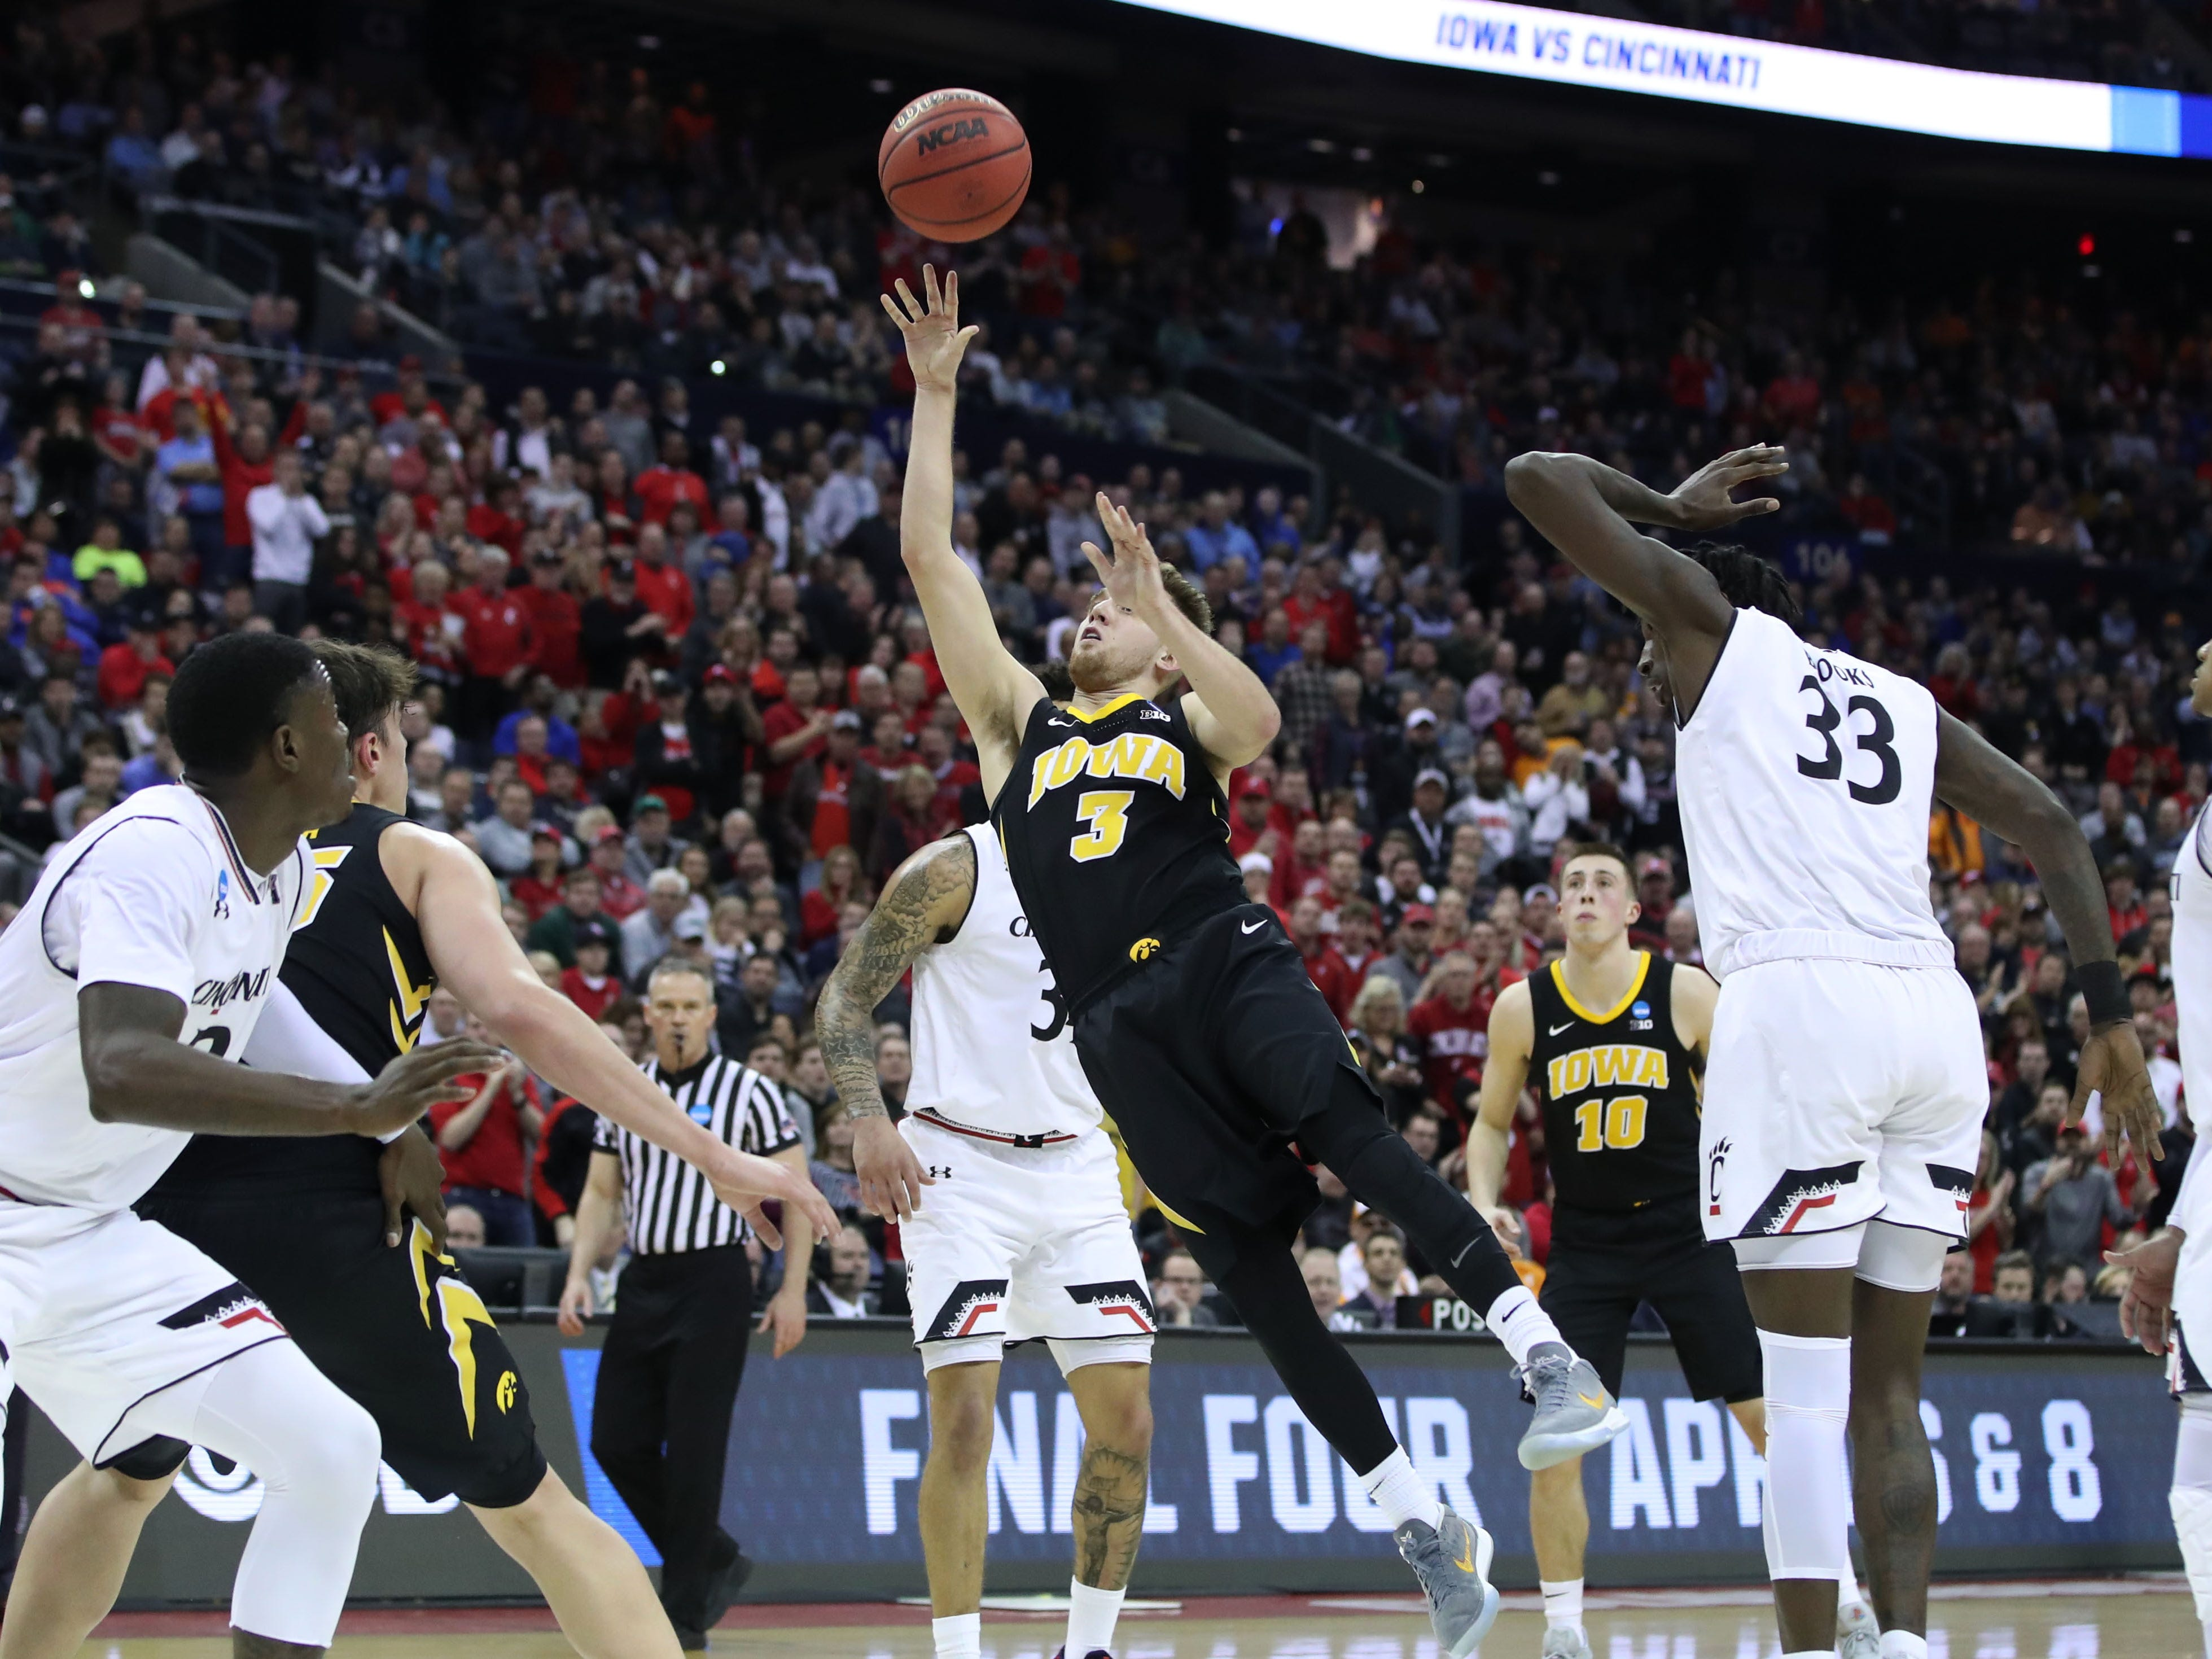 Iowa Hawkeyes guard Jordan Bohannon (3) shoots the ball in the second half against the Cincinnati Bearcats in the first round of the 2019 NCAA Tournament at Nationwide Arena on March 22, 2019.